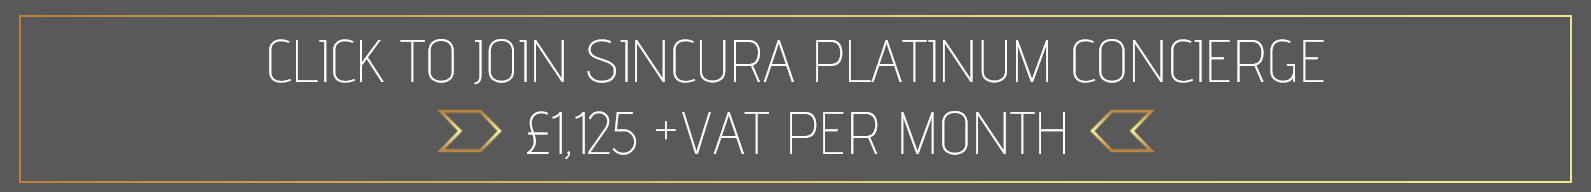 join sincura platinum concierge membership monmthly for the best vip concierge on the market